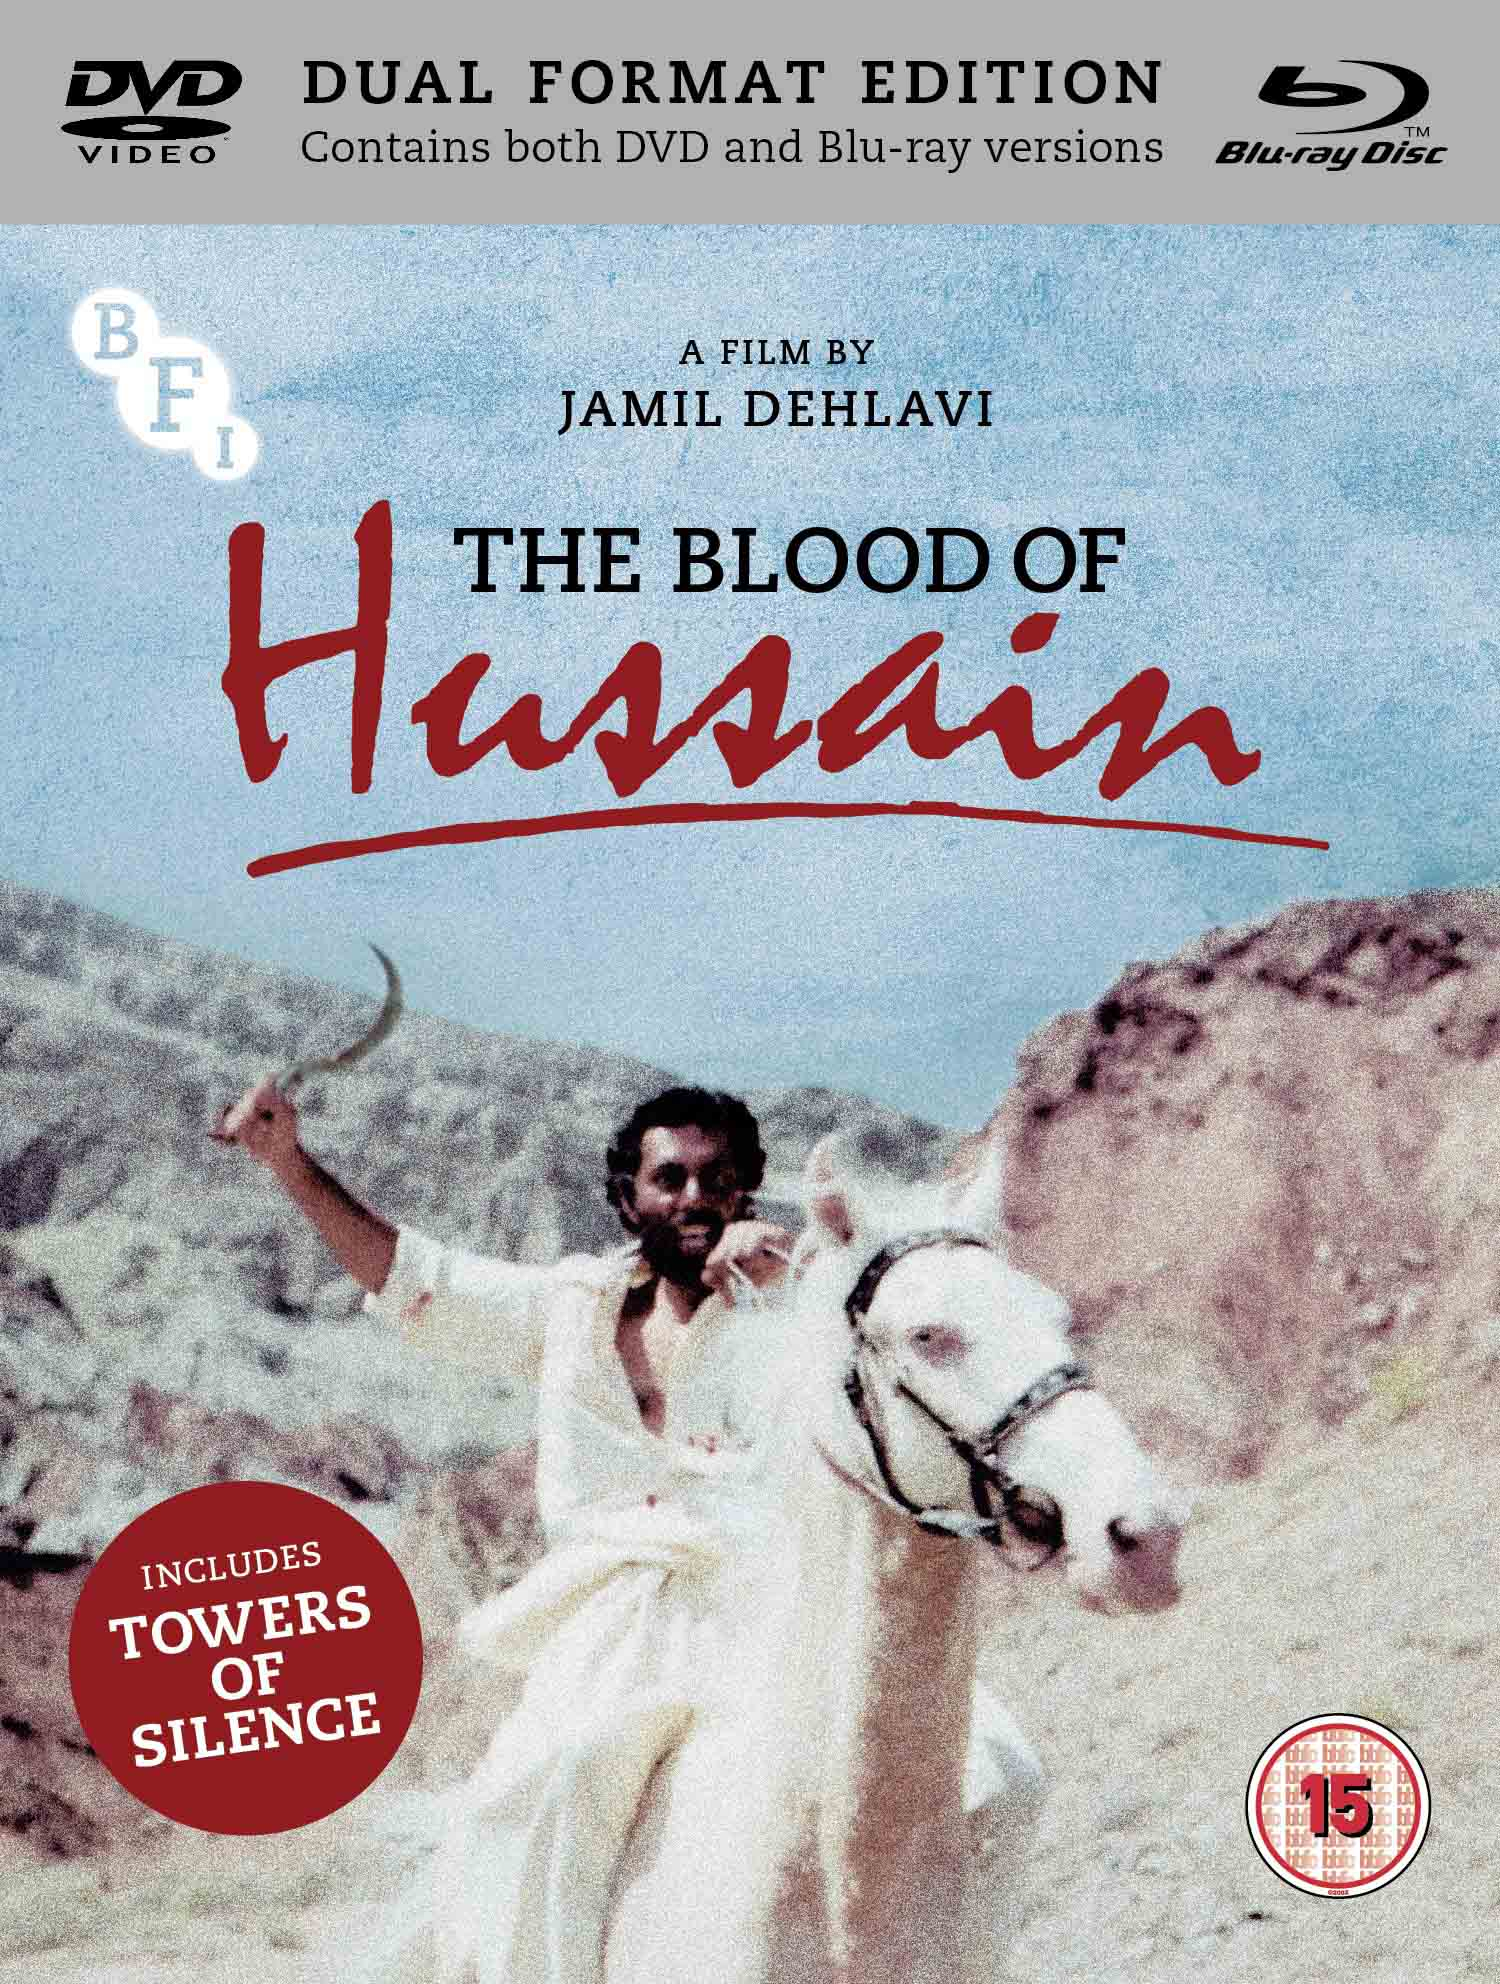 Buy The Blood of Hussain (Dual Format Edition)